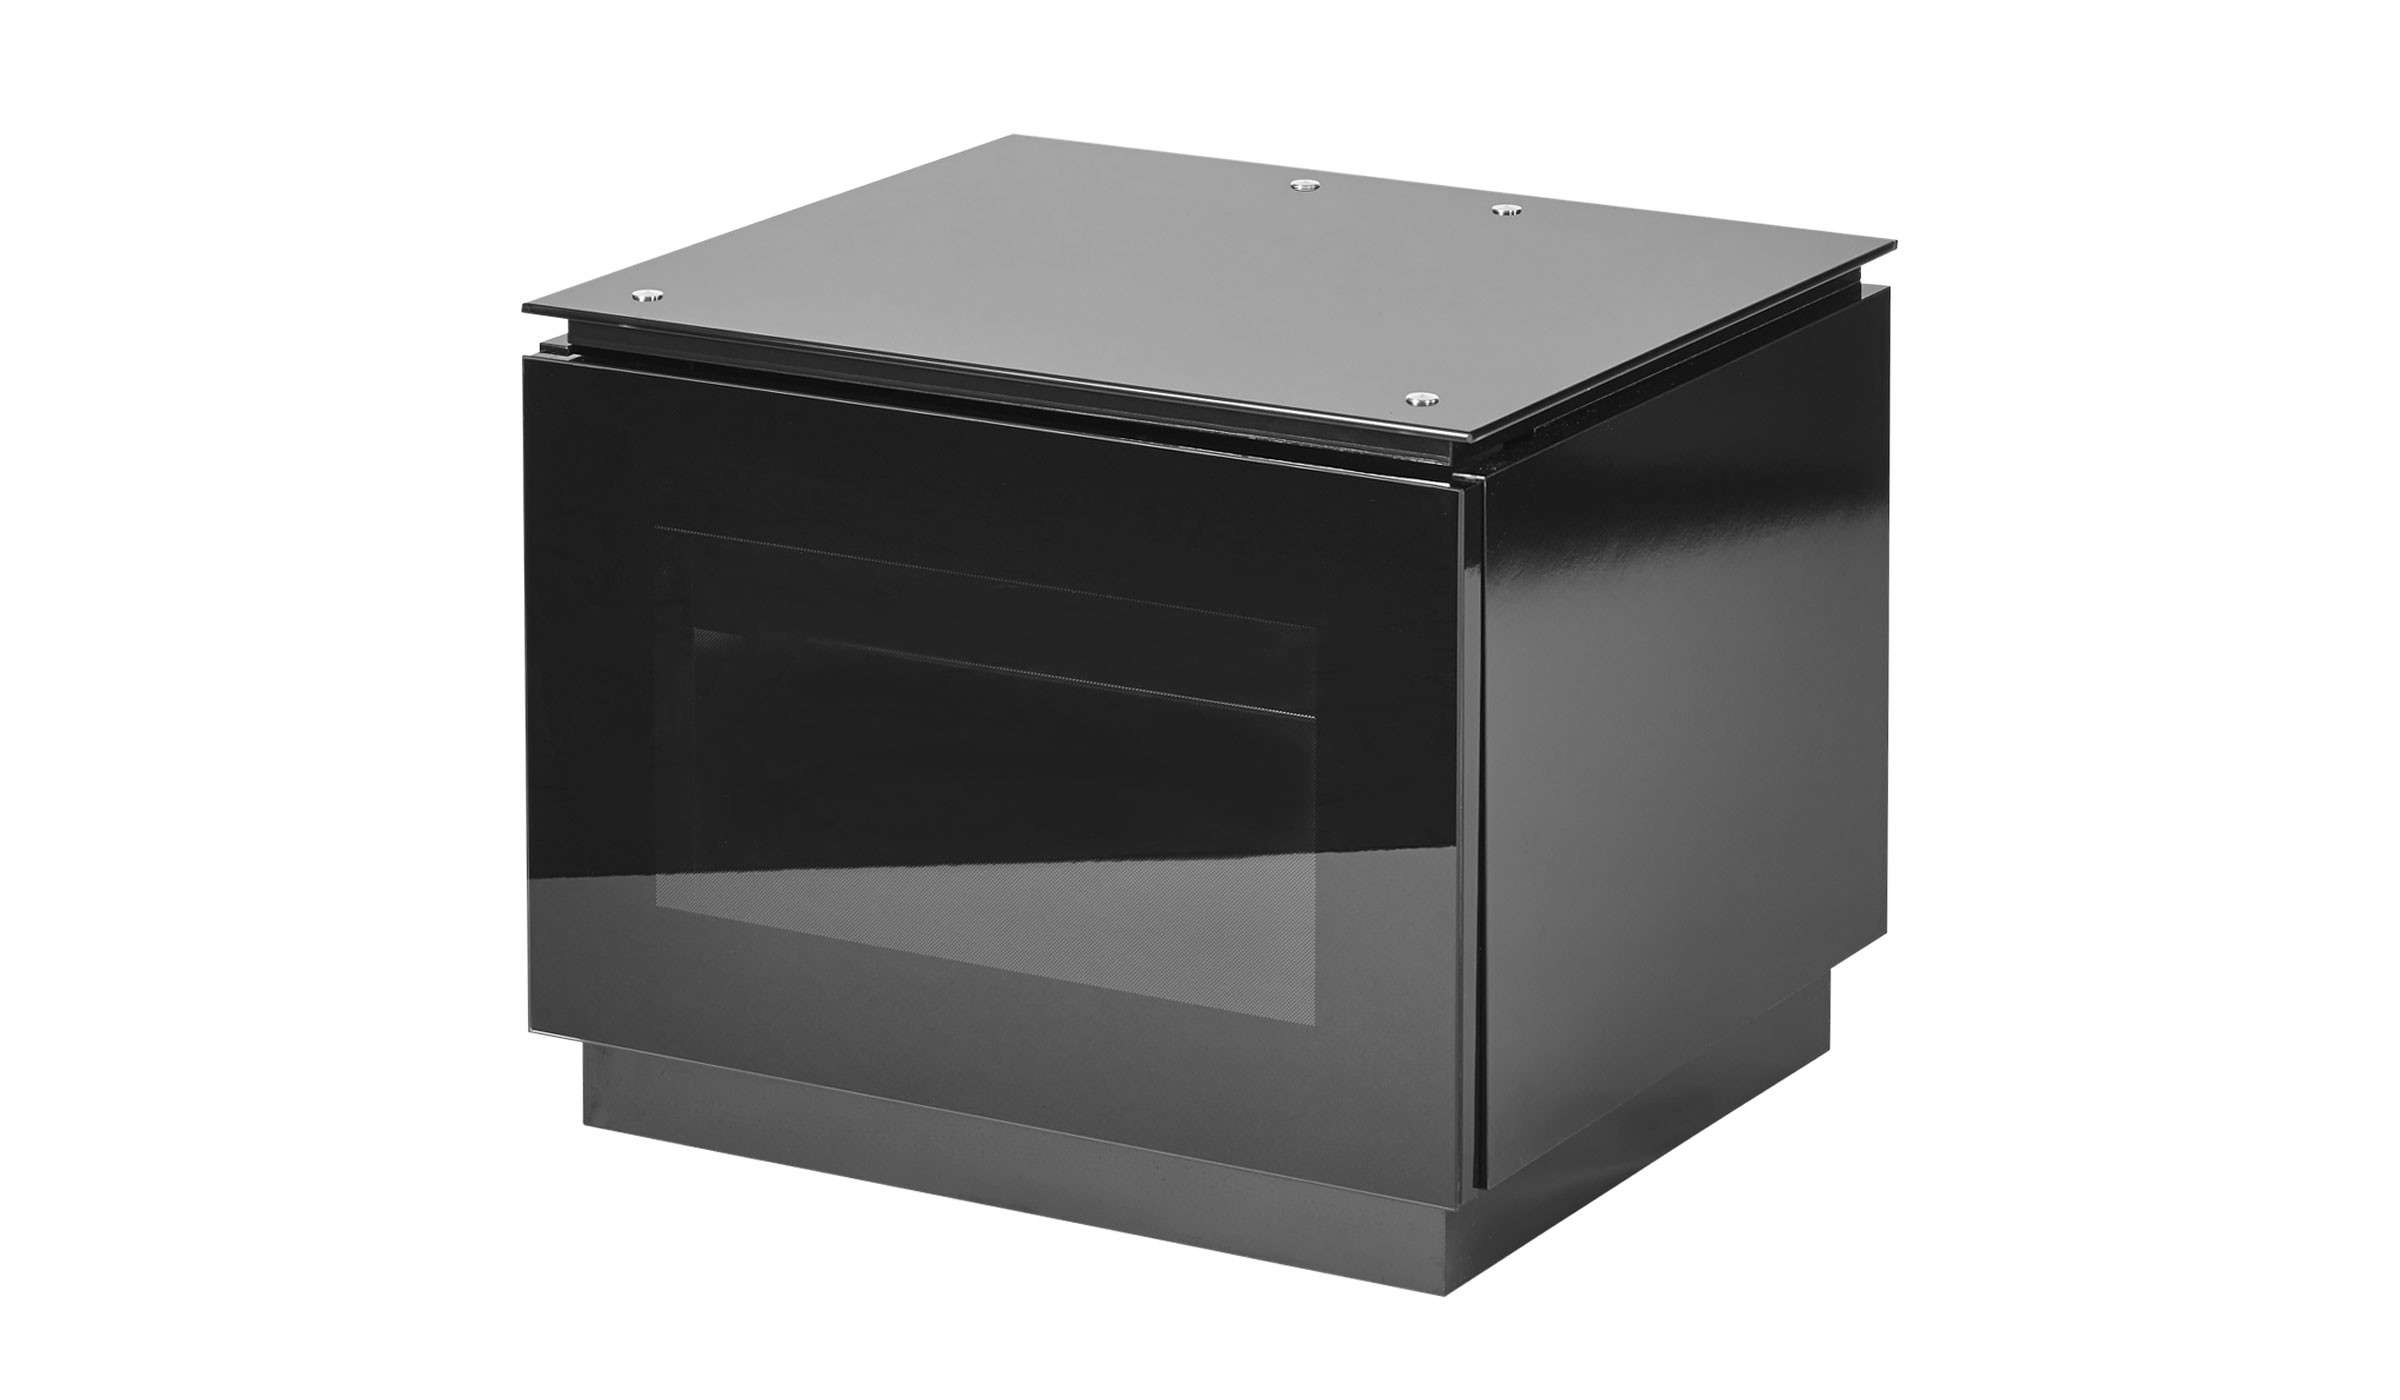 Black Gloss Tv Unit Up To 32 Inch Flat Screen Tv | Mmt D550 Inside Glass Tv Cabinets With Doors (View 8 of 20)